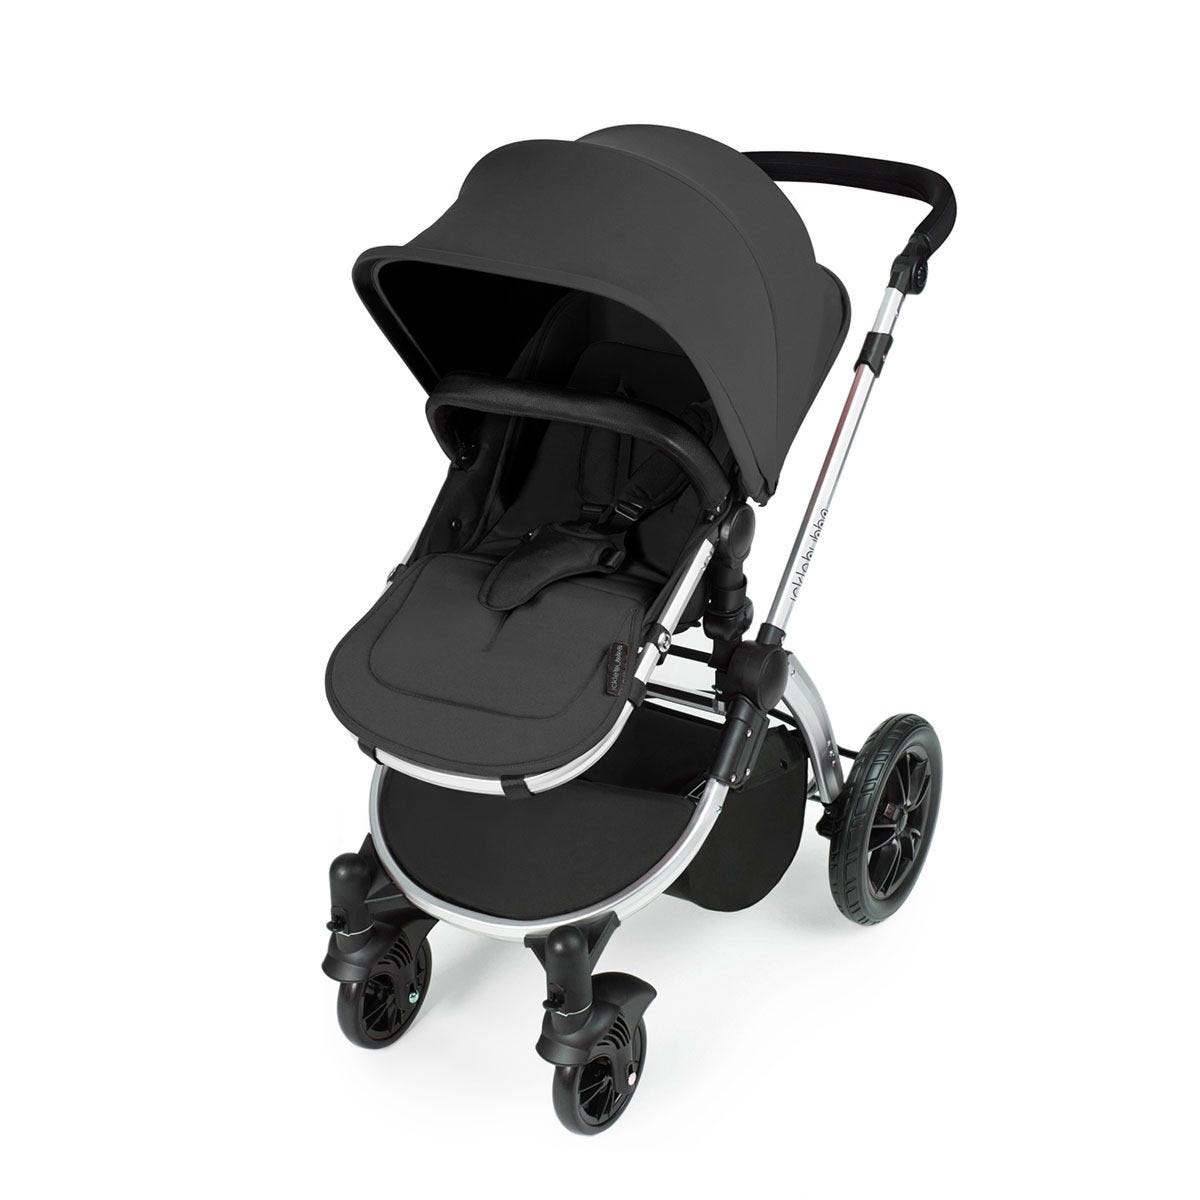 Ickle Bubba Stomp V3 All in One Travel System with Isofix Base - Graphite Grey on Silver with Black Handles